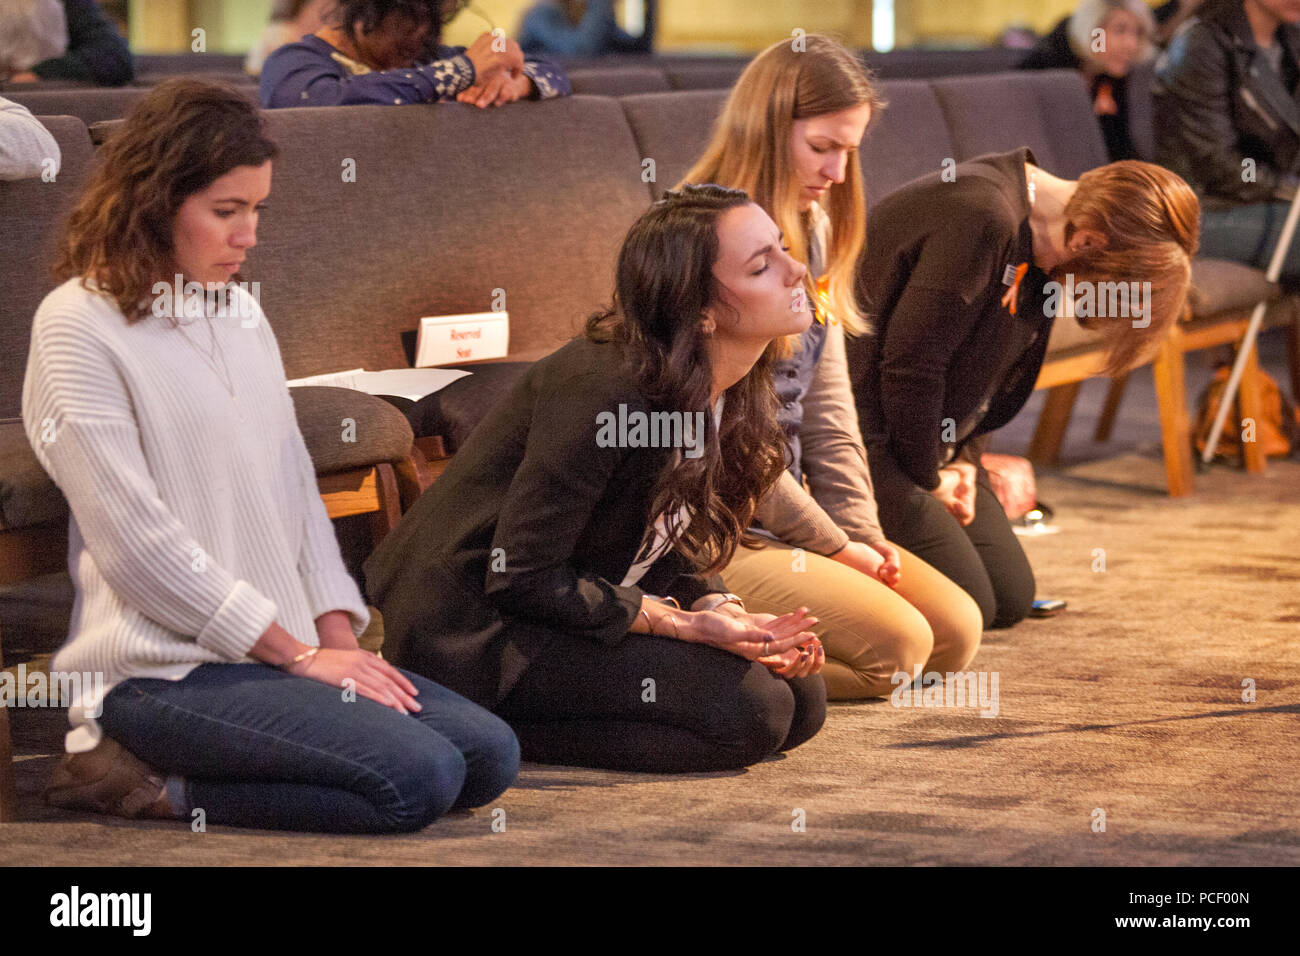 A prayer vigil at a Costa Mesa, CA, Christian college offers support to victims of human trafficking. - Stock Image